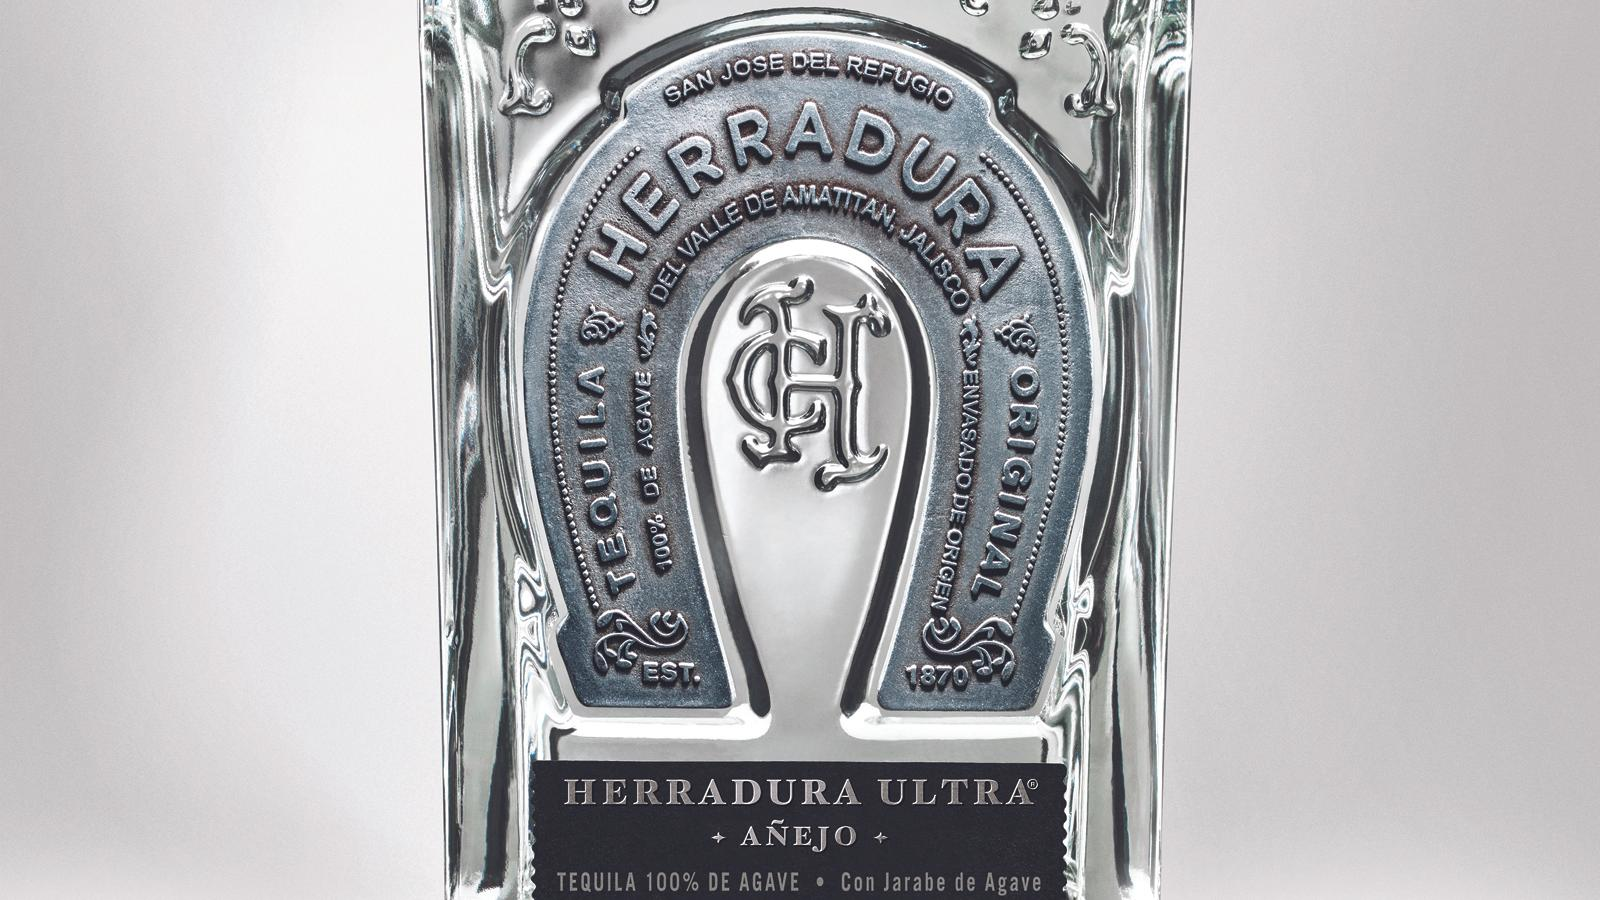 Herradura Is (Clearly) Aged